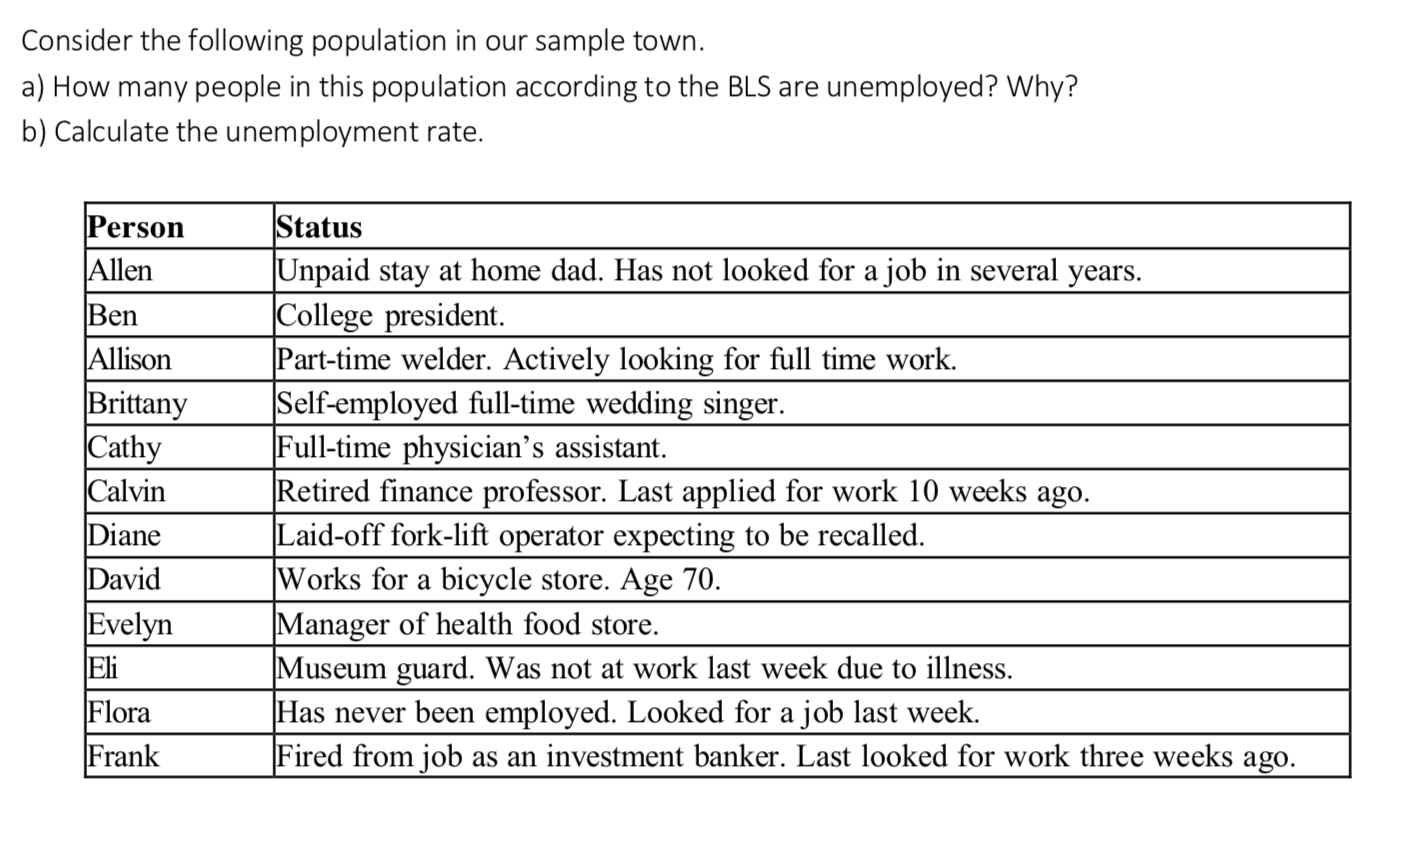 Consider the following population in our sample town. a) How many people in this population according to the BLS are unemployed? Why? b) Calculate the unemployment rate. Status Unpaid stay at home dad. Has not looked for a job in several years College president. Part-time welder. Actively looking for full time work Self-employed full-time wedding singer. Full-time physician's assistant. Retired finance professor. Last applied for work 10 weeks ago Laid-off fork-lift operator expecting to be recalled. Works for a bicycle store. Age 70 Manager of health food store Museum guard. Was not at work last week due to illness Has never been employed. Looked for a job last week. Fired from job as an investment banker. Last looked for work three weeks ago. Person Allen Ben Allison Brittany Cathy Calvin Diane David Evelyn Eli Flora Frank